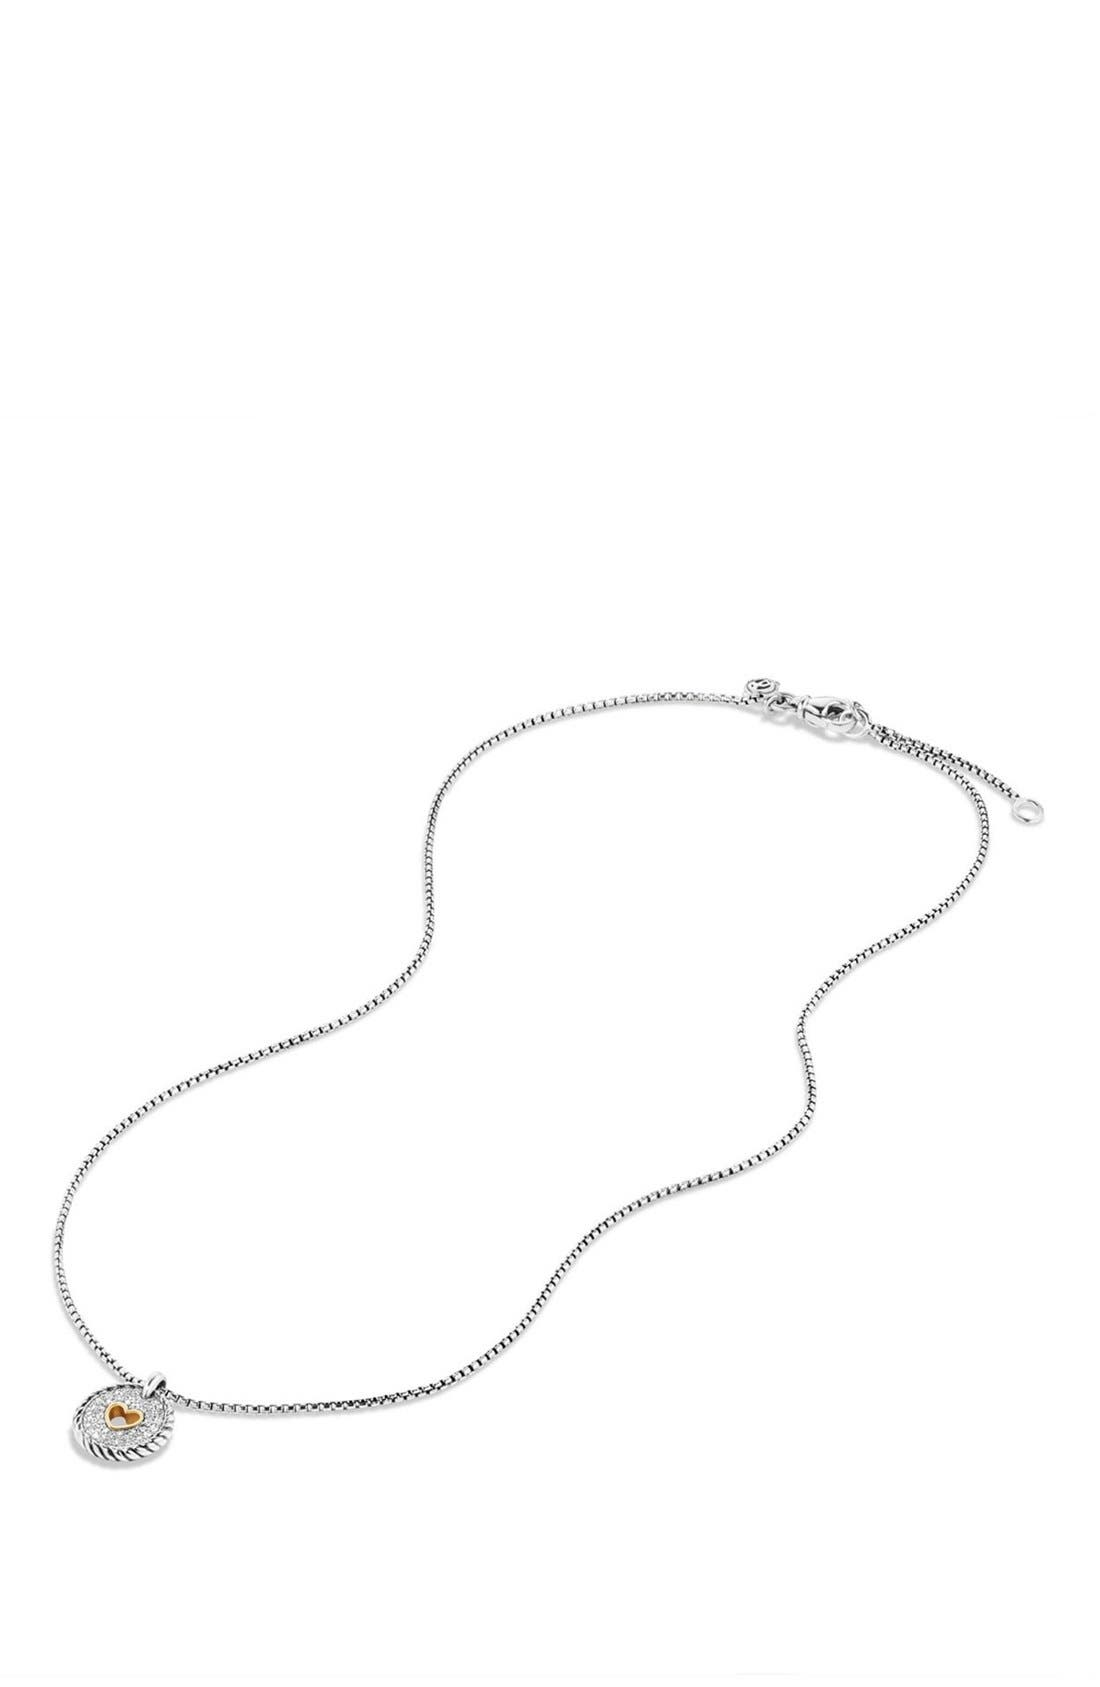 Alternate Image 3  - David Yurman 'Cable Collectibles' Heart Charm with Diamonds